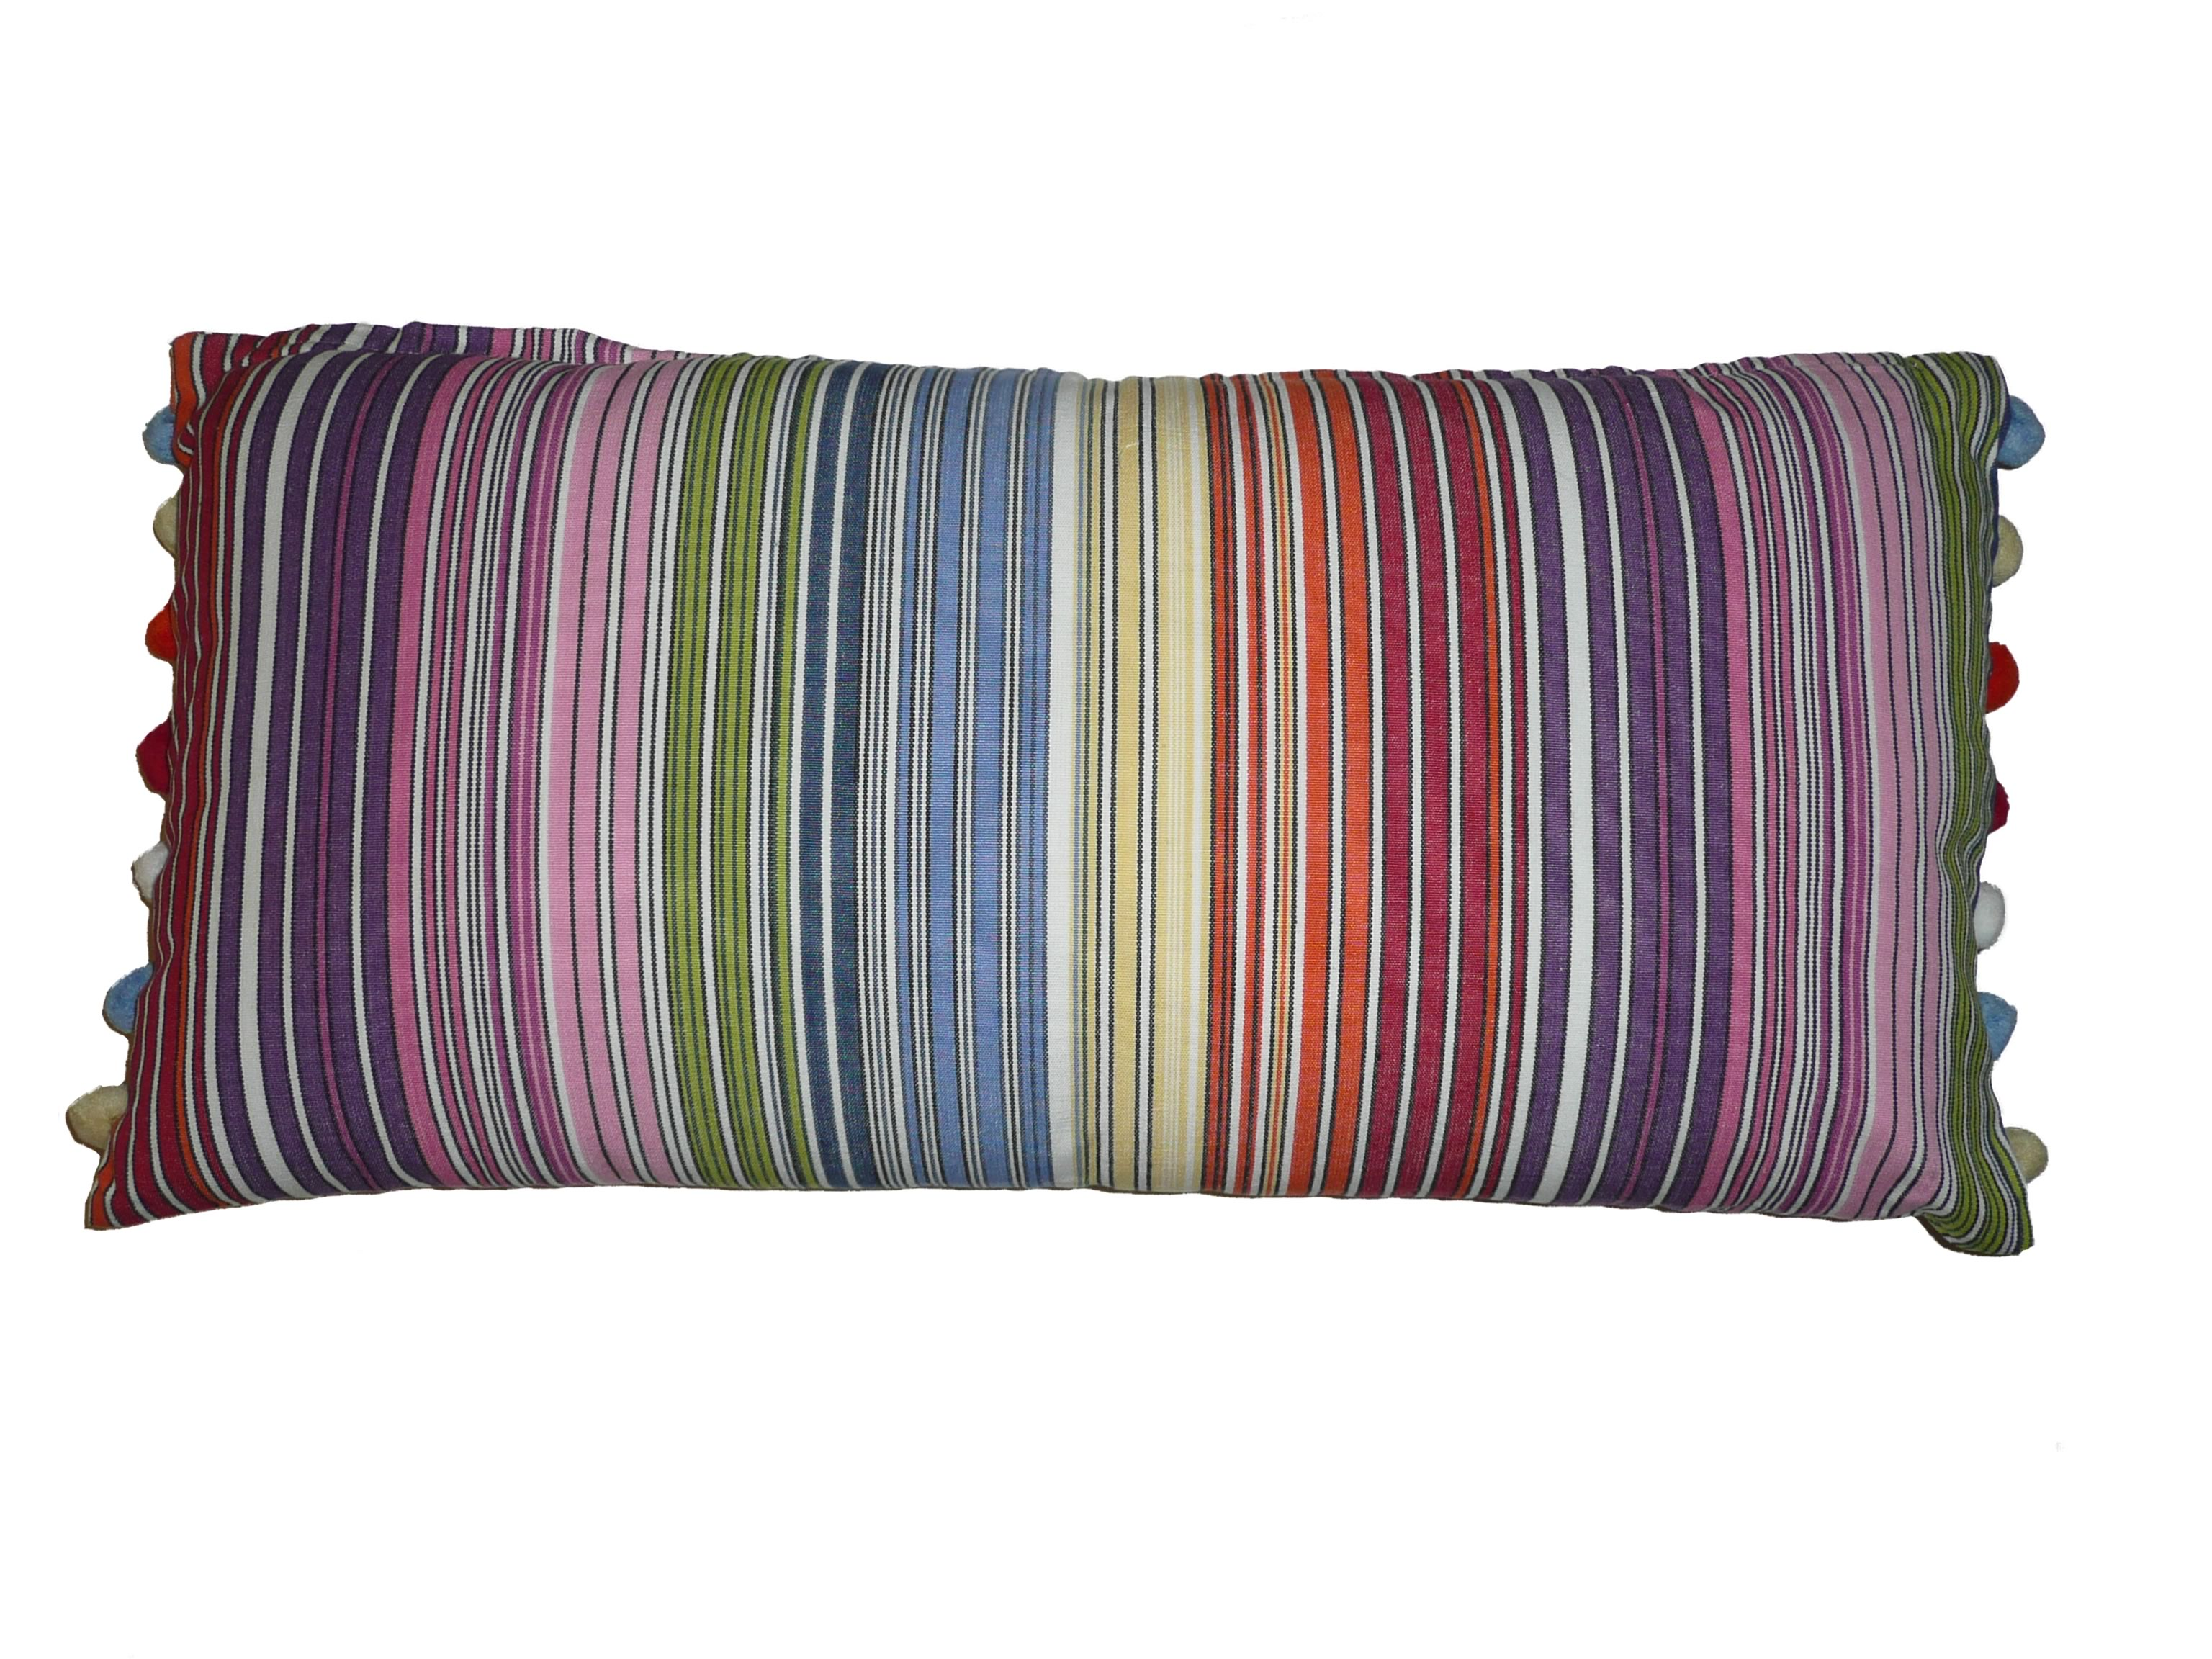 Narrow Rainbow Multi Stripe Striped Oblong Cushions with Bobble Fringe  Rhumba Stripes